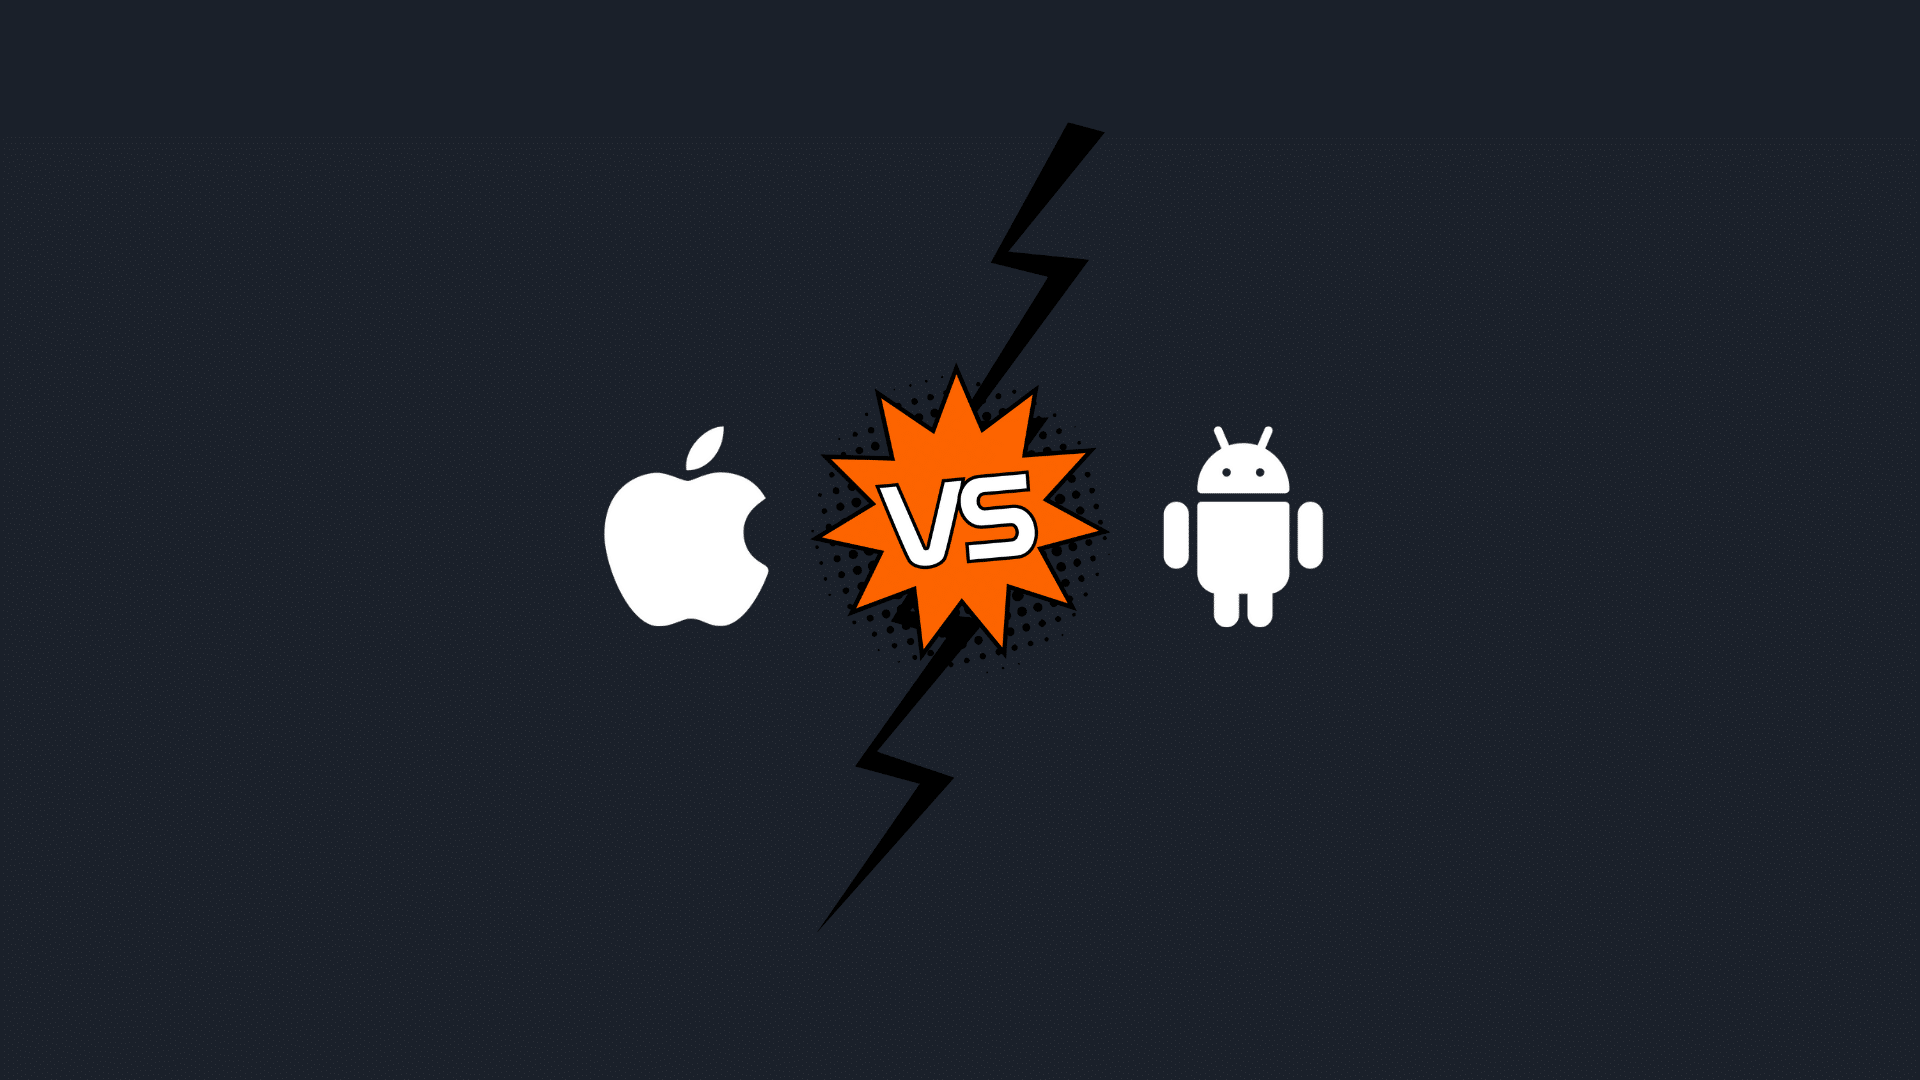 iOS 14 vs Android 11